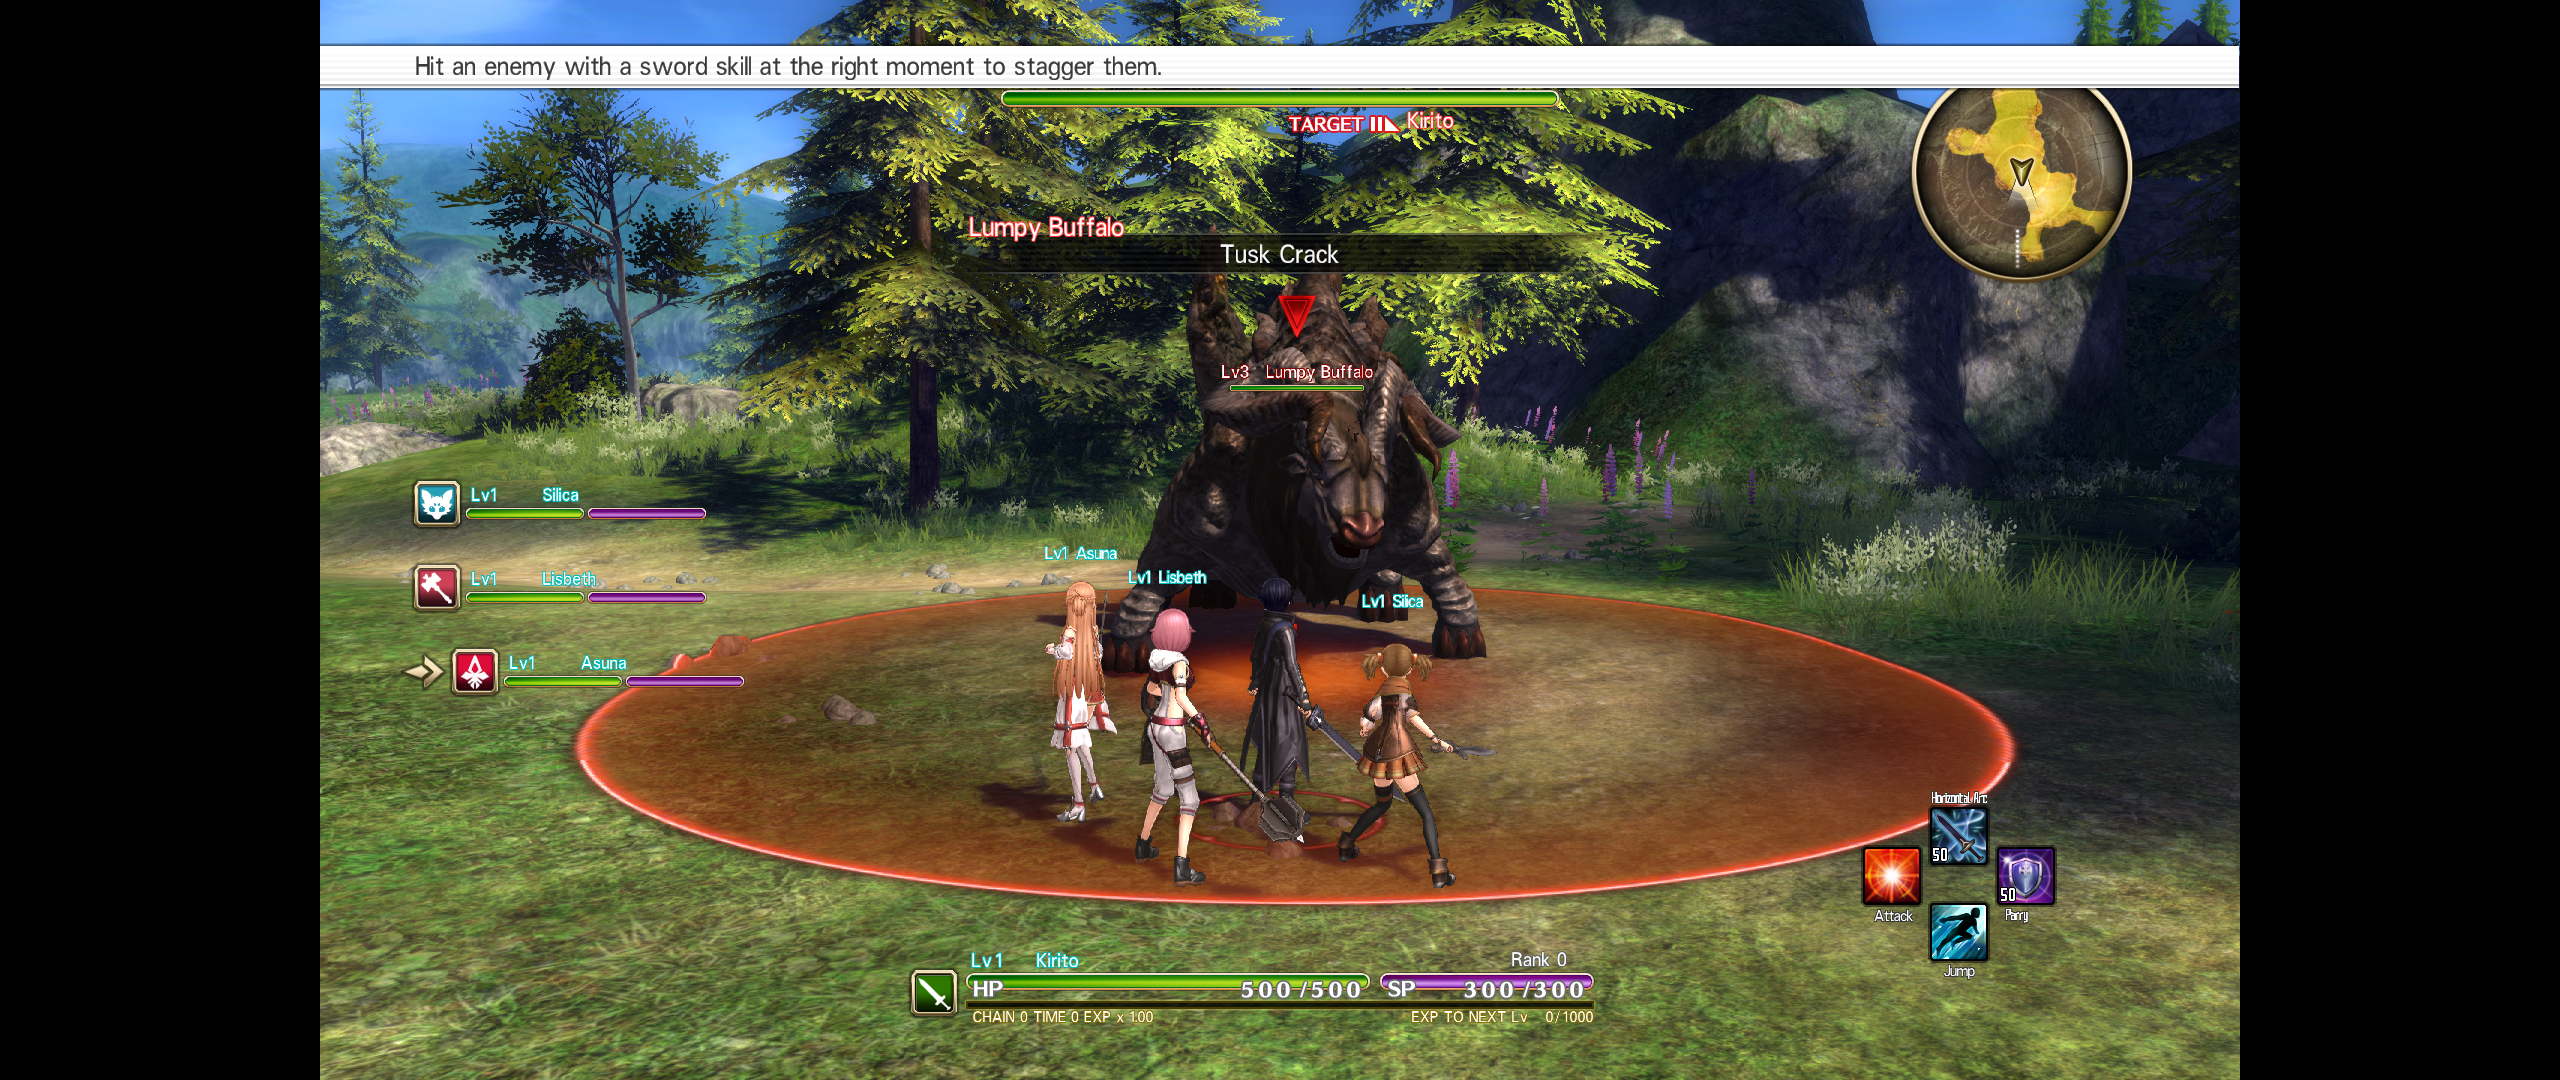 WSGF • View topic - Sword Art Online: Hollow Realization 21:9